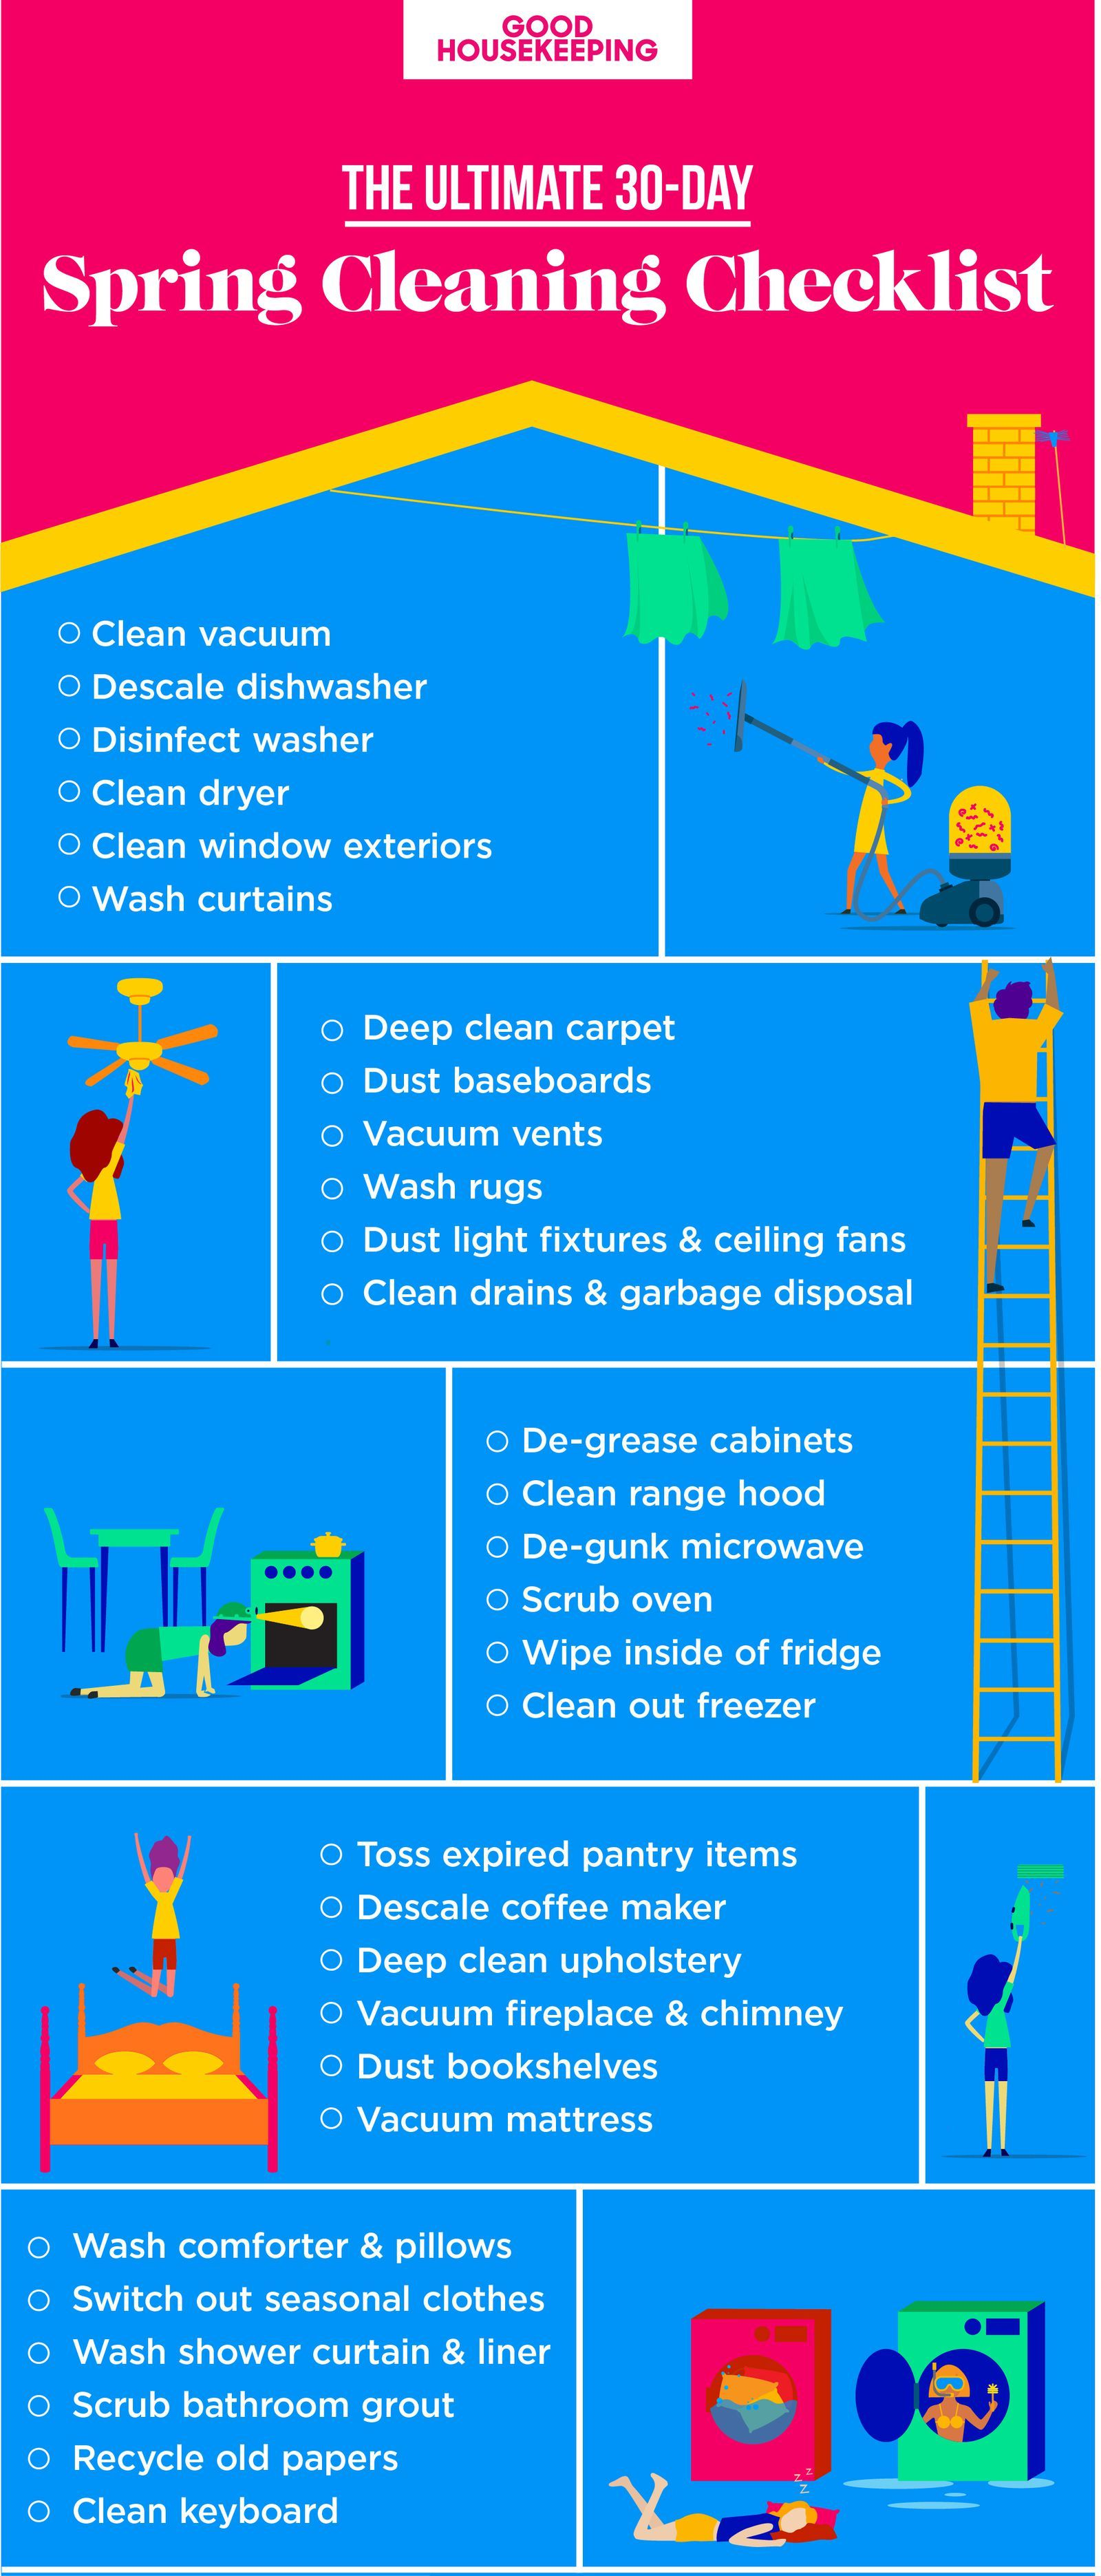 A 30 Day Guide to pleting All of Your Spring Cleaning Tasks